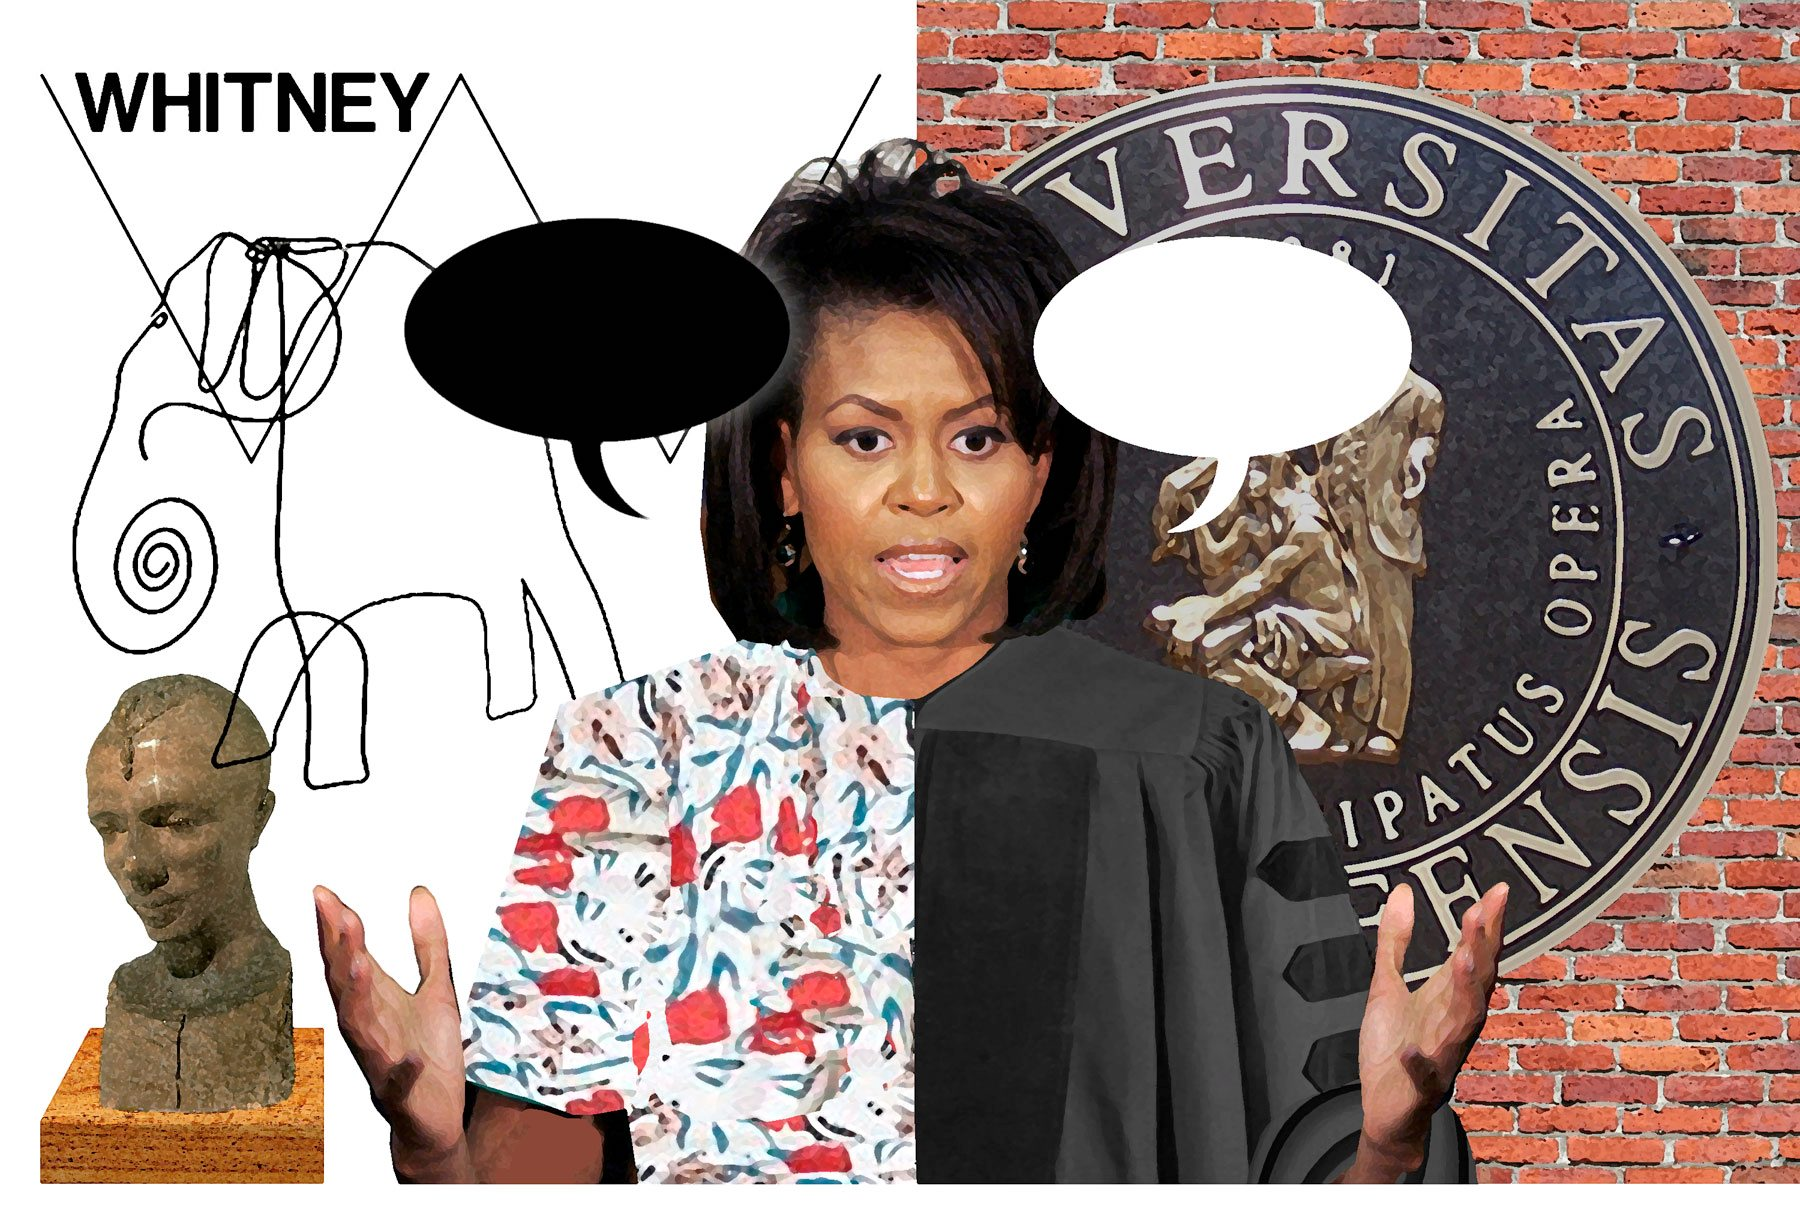 michelle obama thesis princeton university Michelle obama's senior year thesis at princeton university, obtained from the campaign by politico, shows a document written by a young woman grappling with a society in which a black princeton alumnus might only be allowed to remain &quoton the periphery.